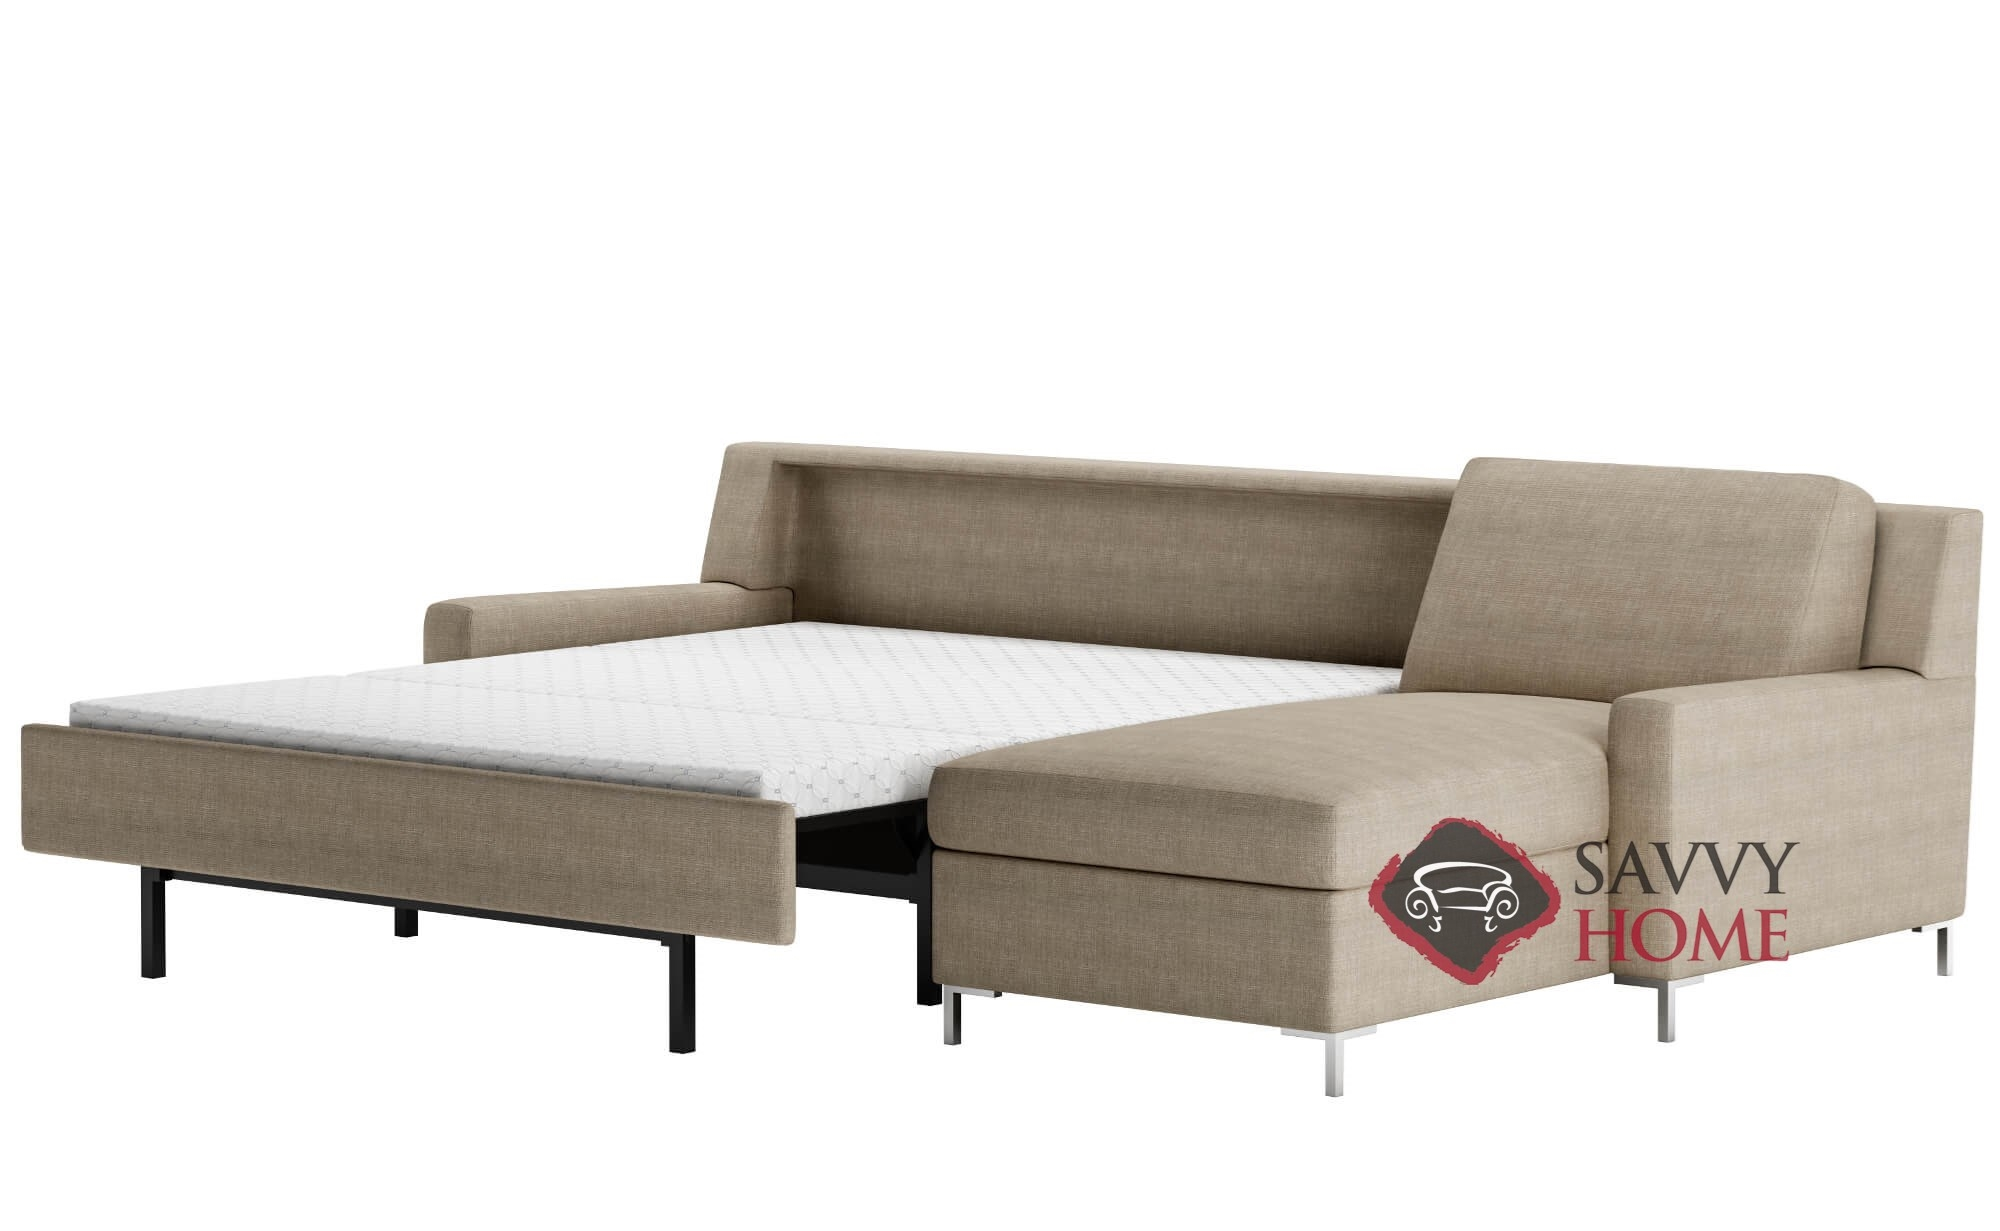 comfortsleeper sectionals leather comfort brynlee modern furniture seating and american comforter americanleather sleeper sofas